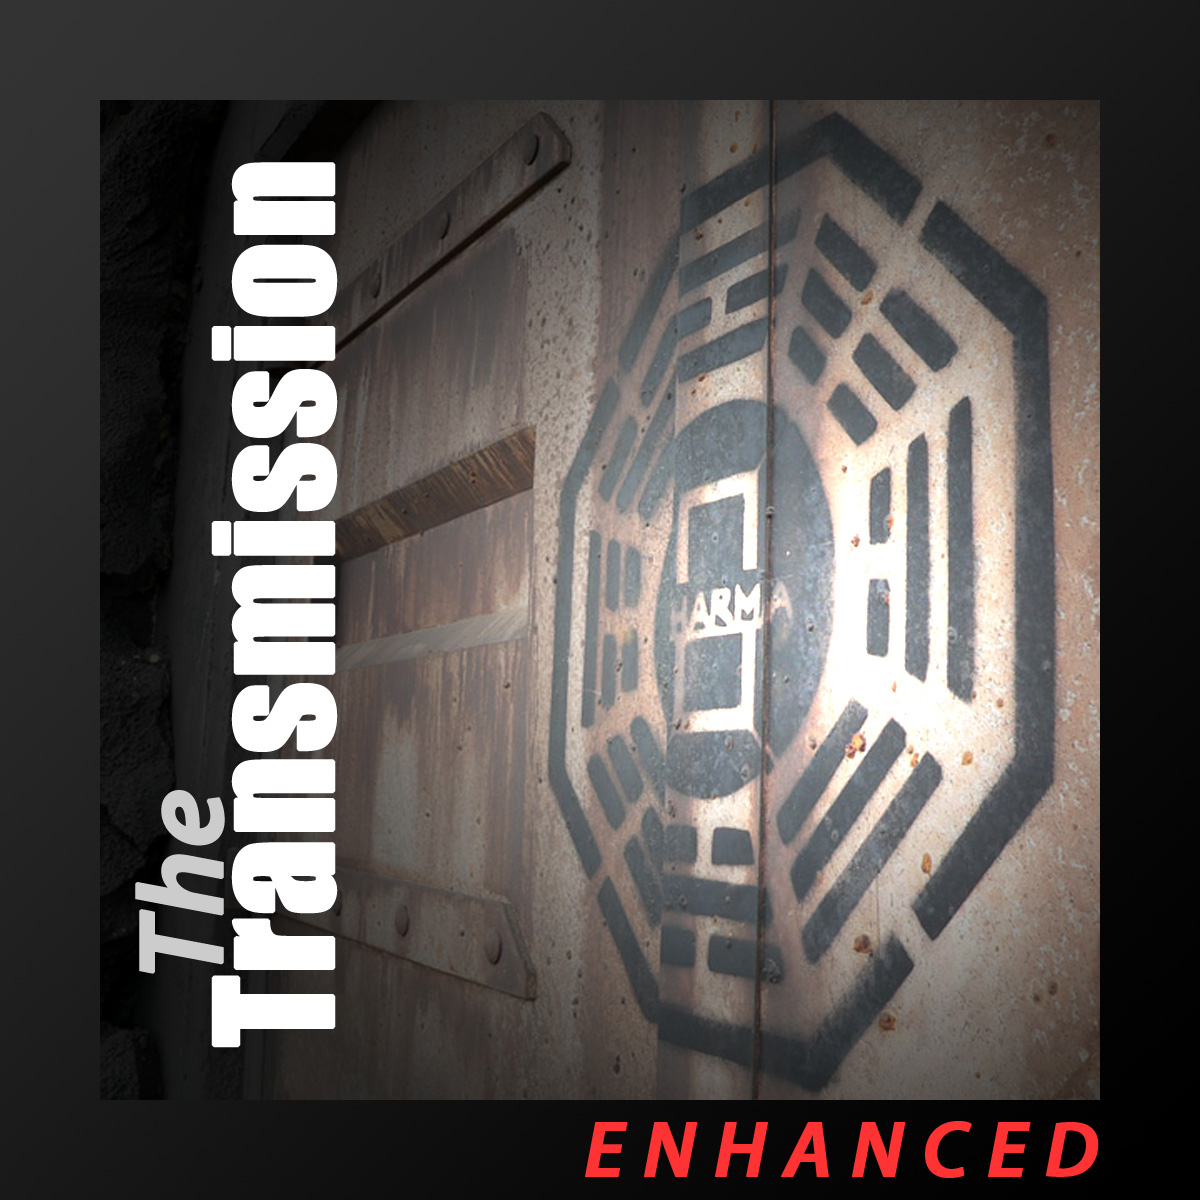 LOST Podcast: The (Enhanced) Transmission